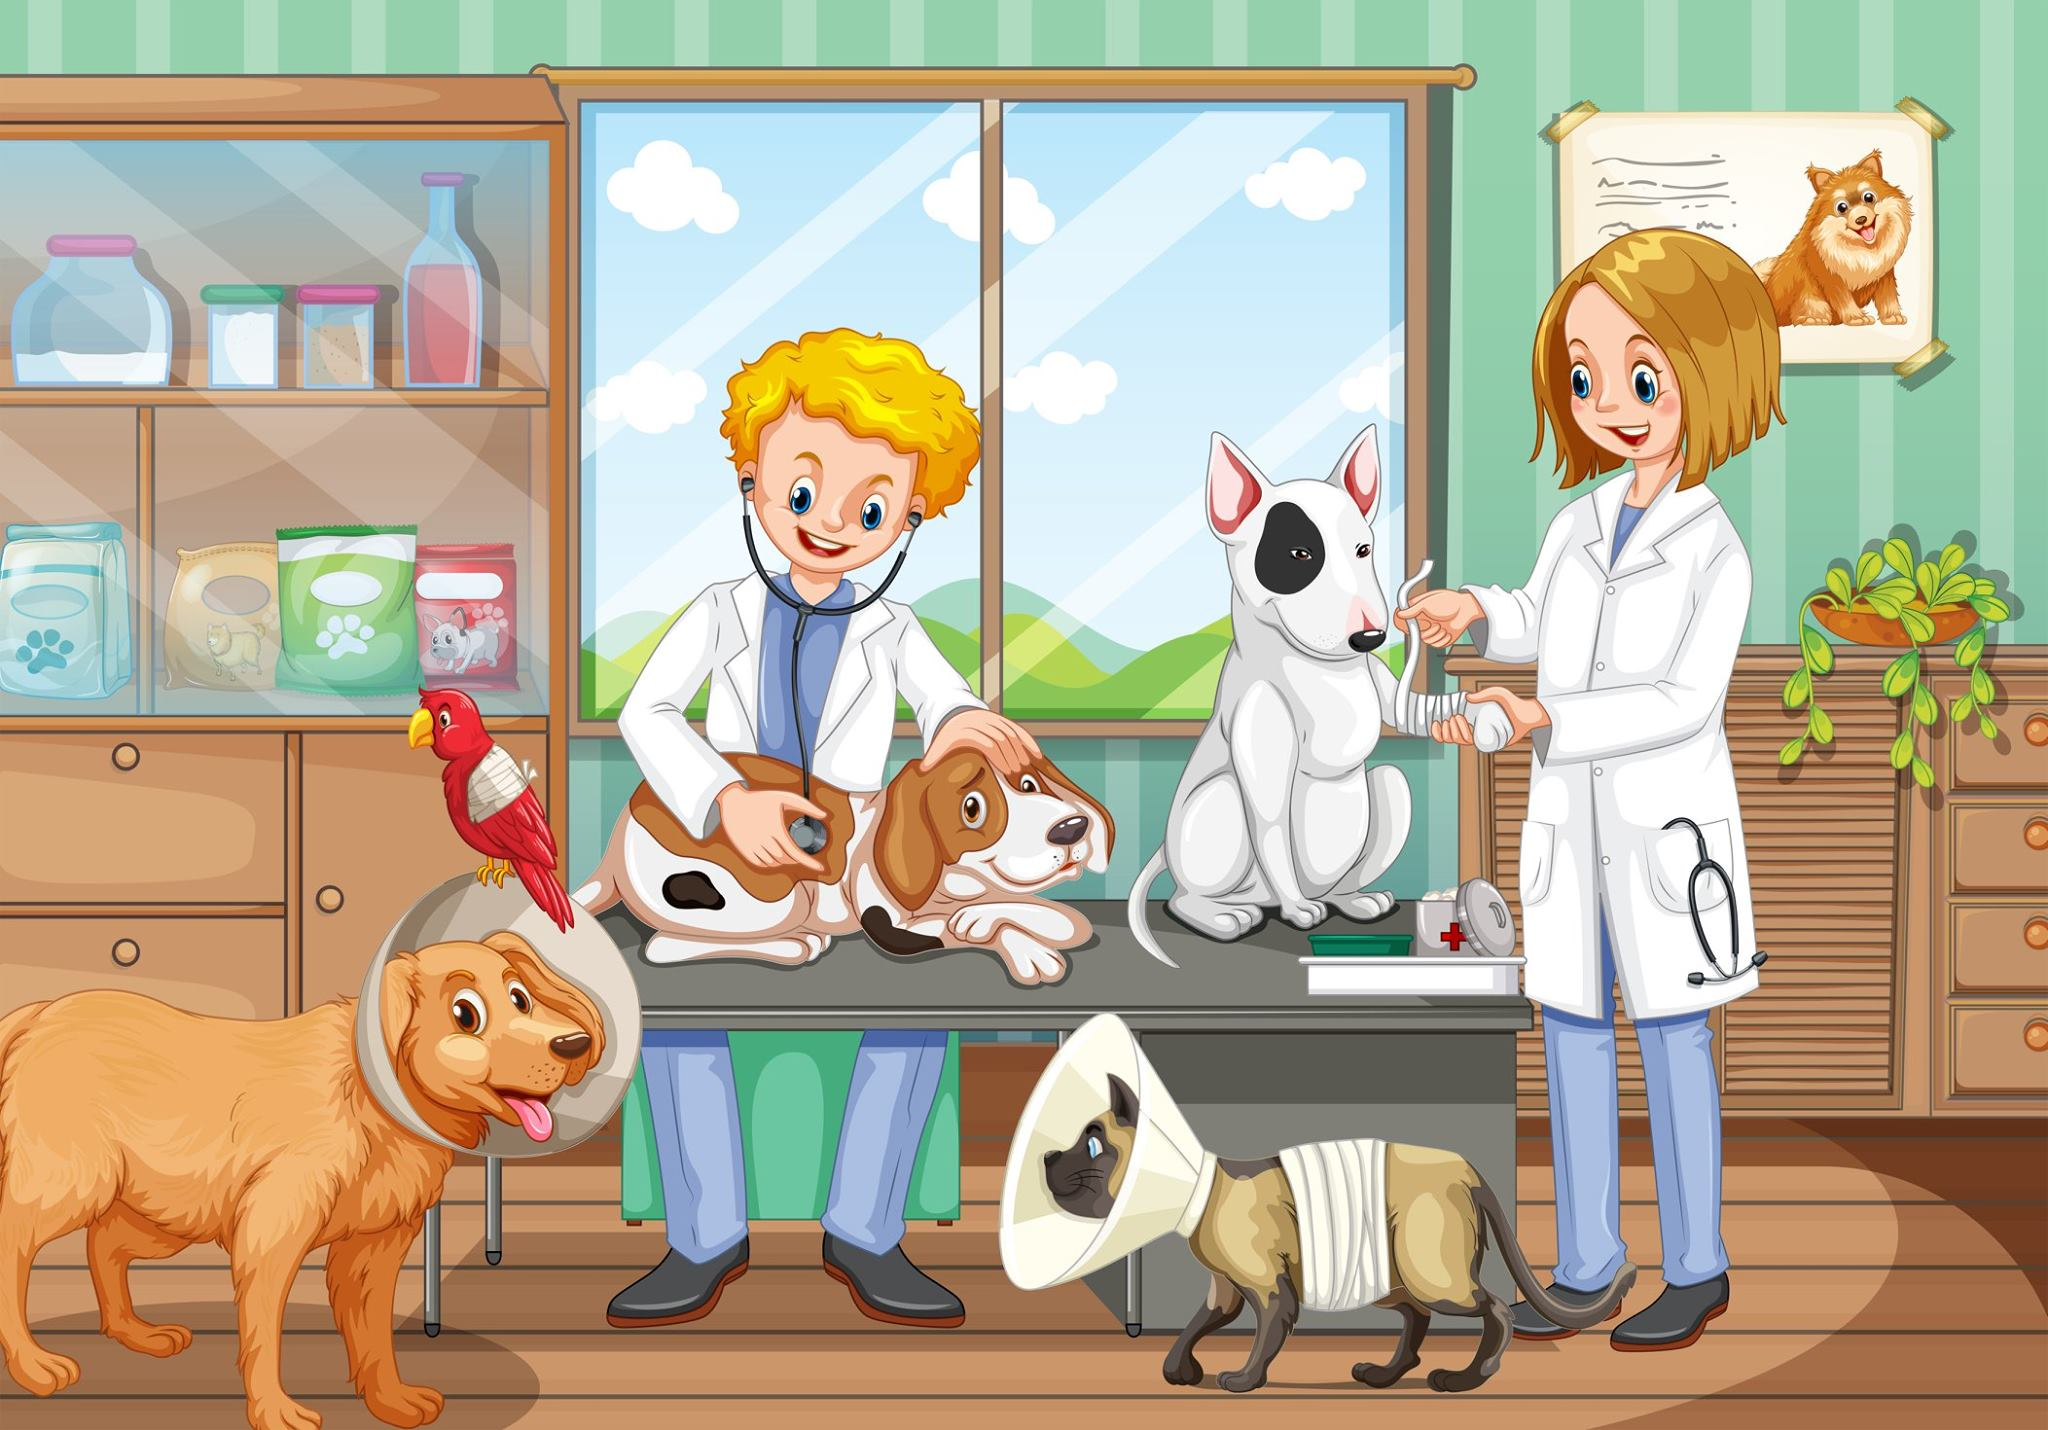 The short-term vocational training courses in Vet Technicians